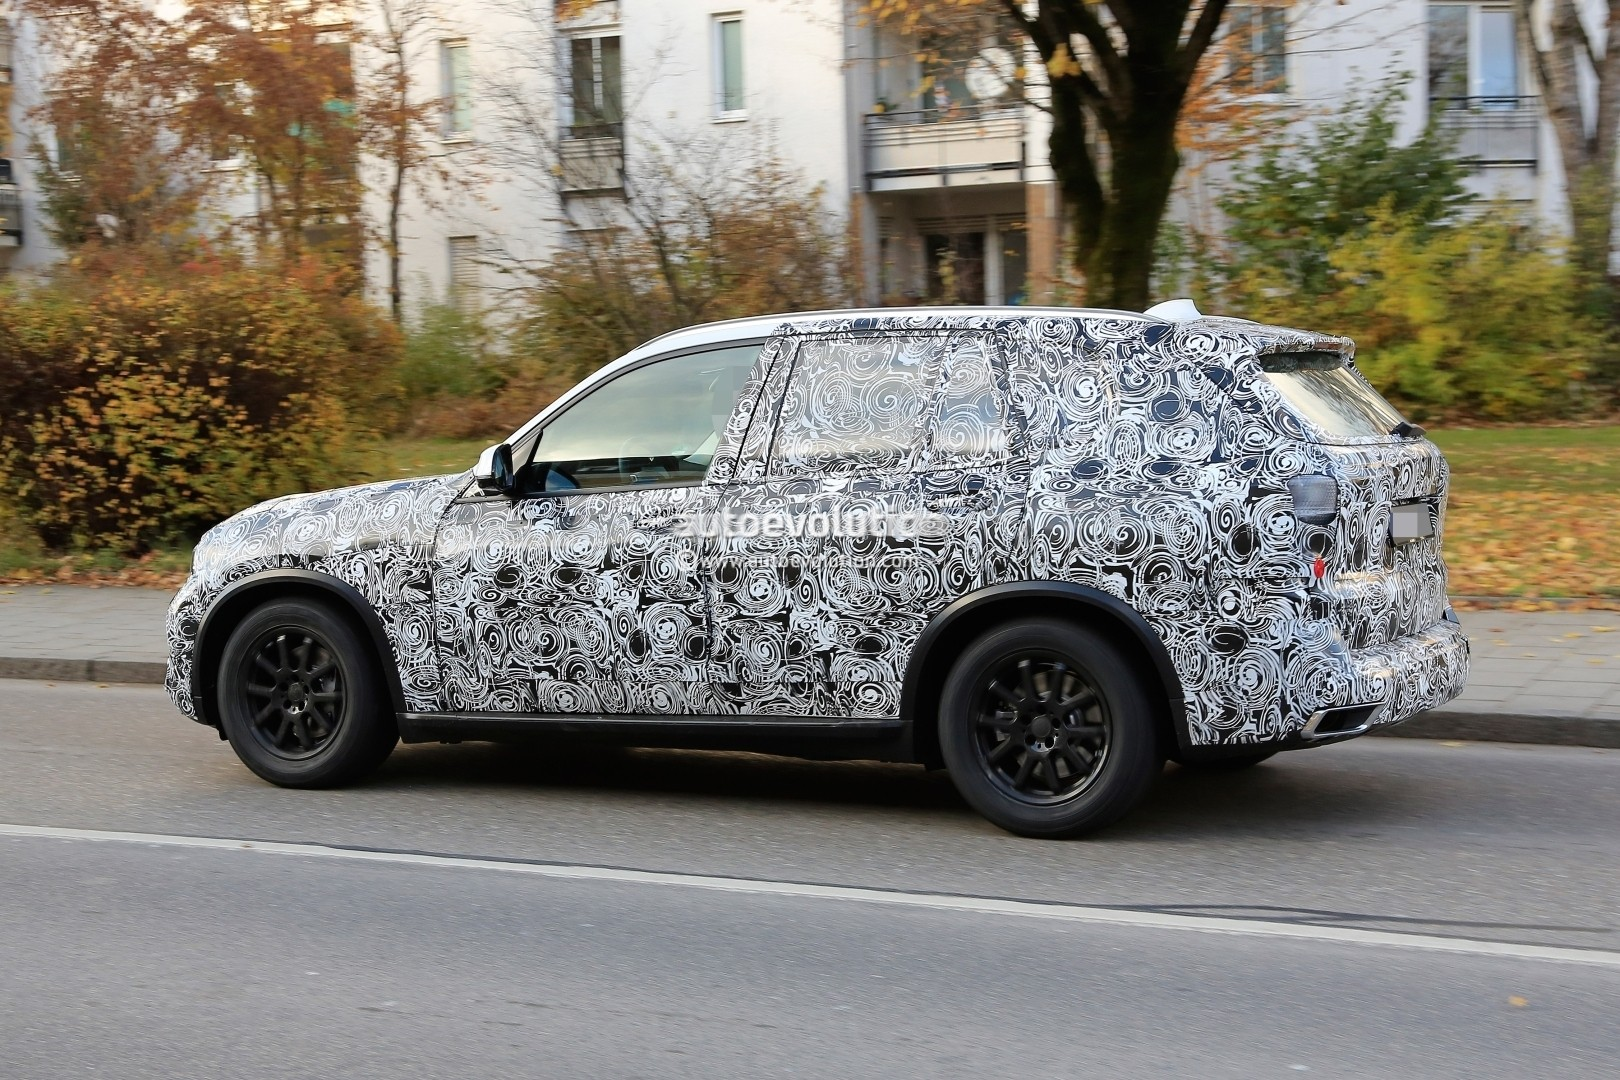 2018 - [BMW] X5 IV [G05] - Page 2 2018-bmw-x5-pre-production-prototype-first-spyshtos-reveal-huge-kidney-grilles_15